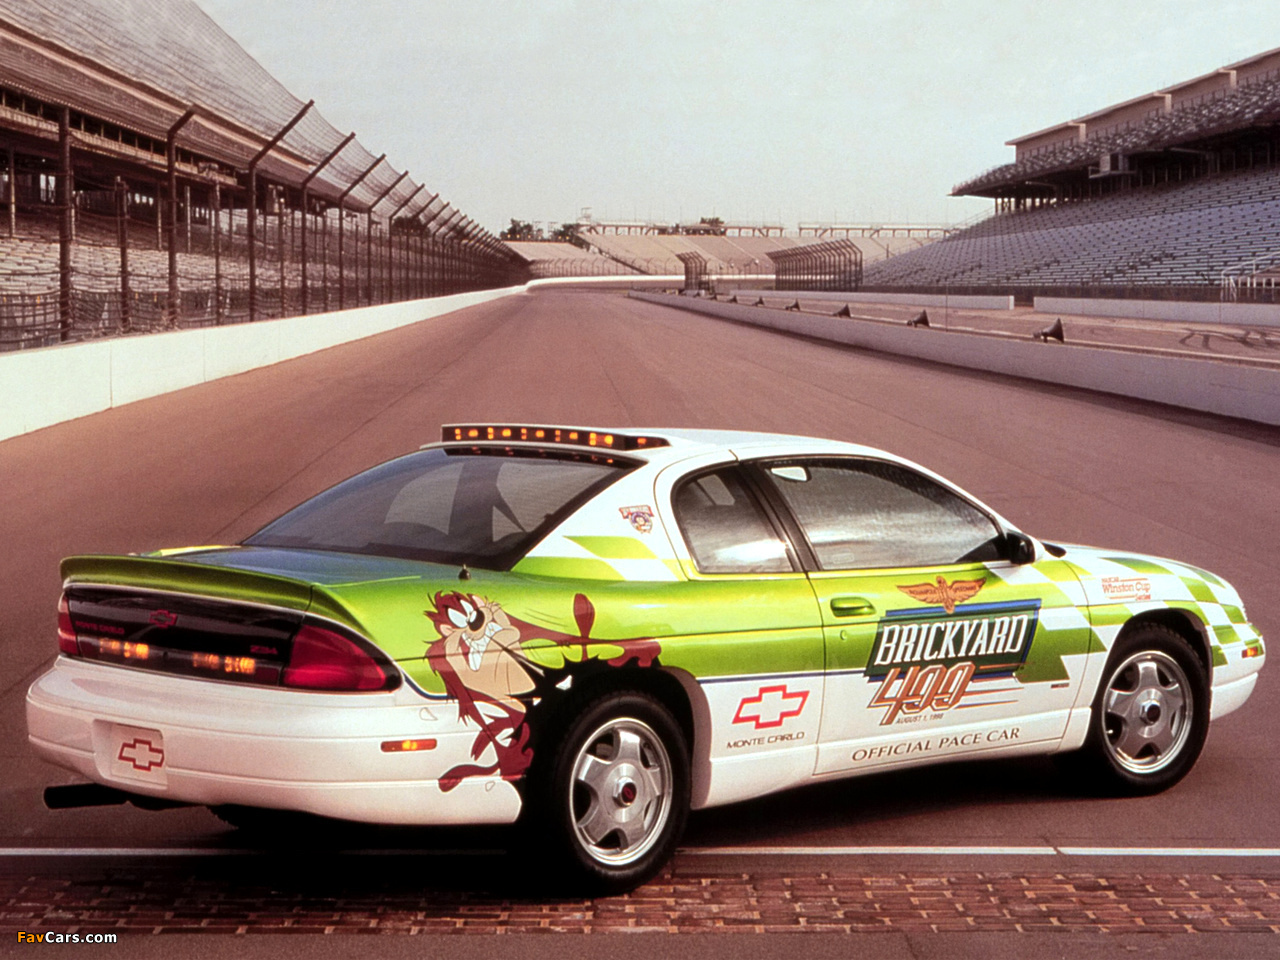 Chevrolet Monte Carlo Brickyard 400 Pace Car 1997 images (1280 x 960)